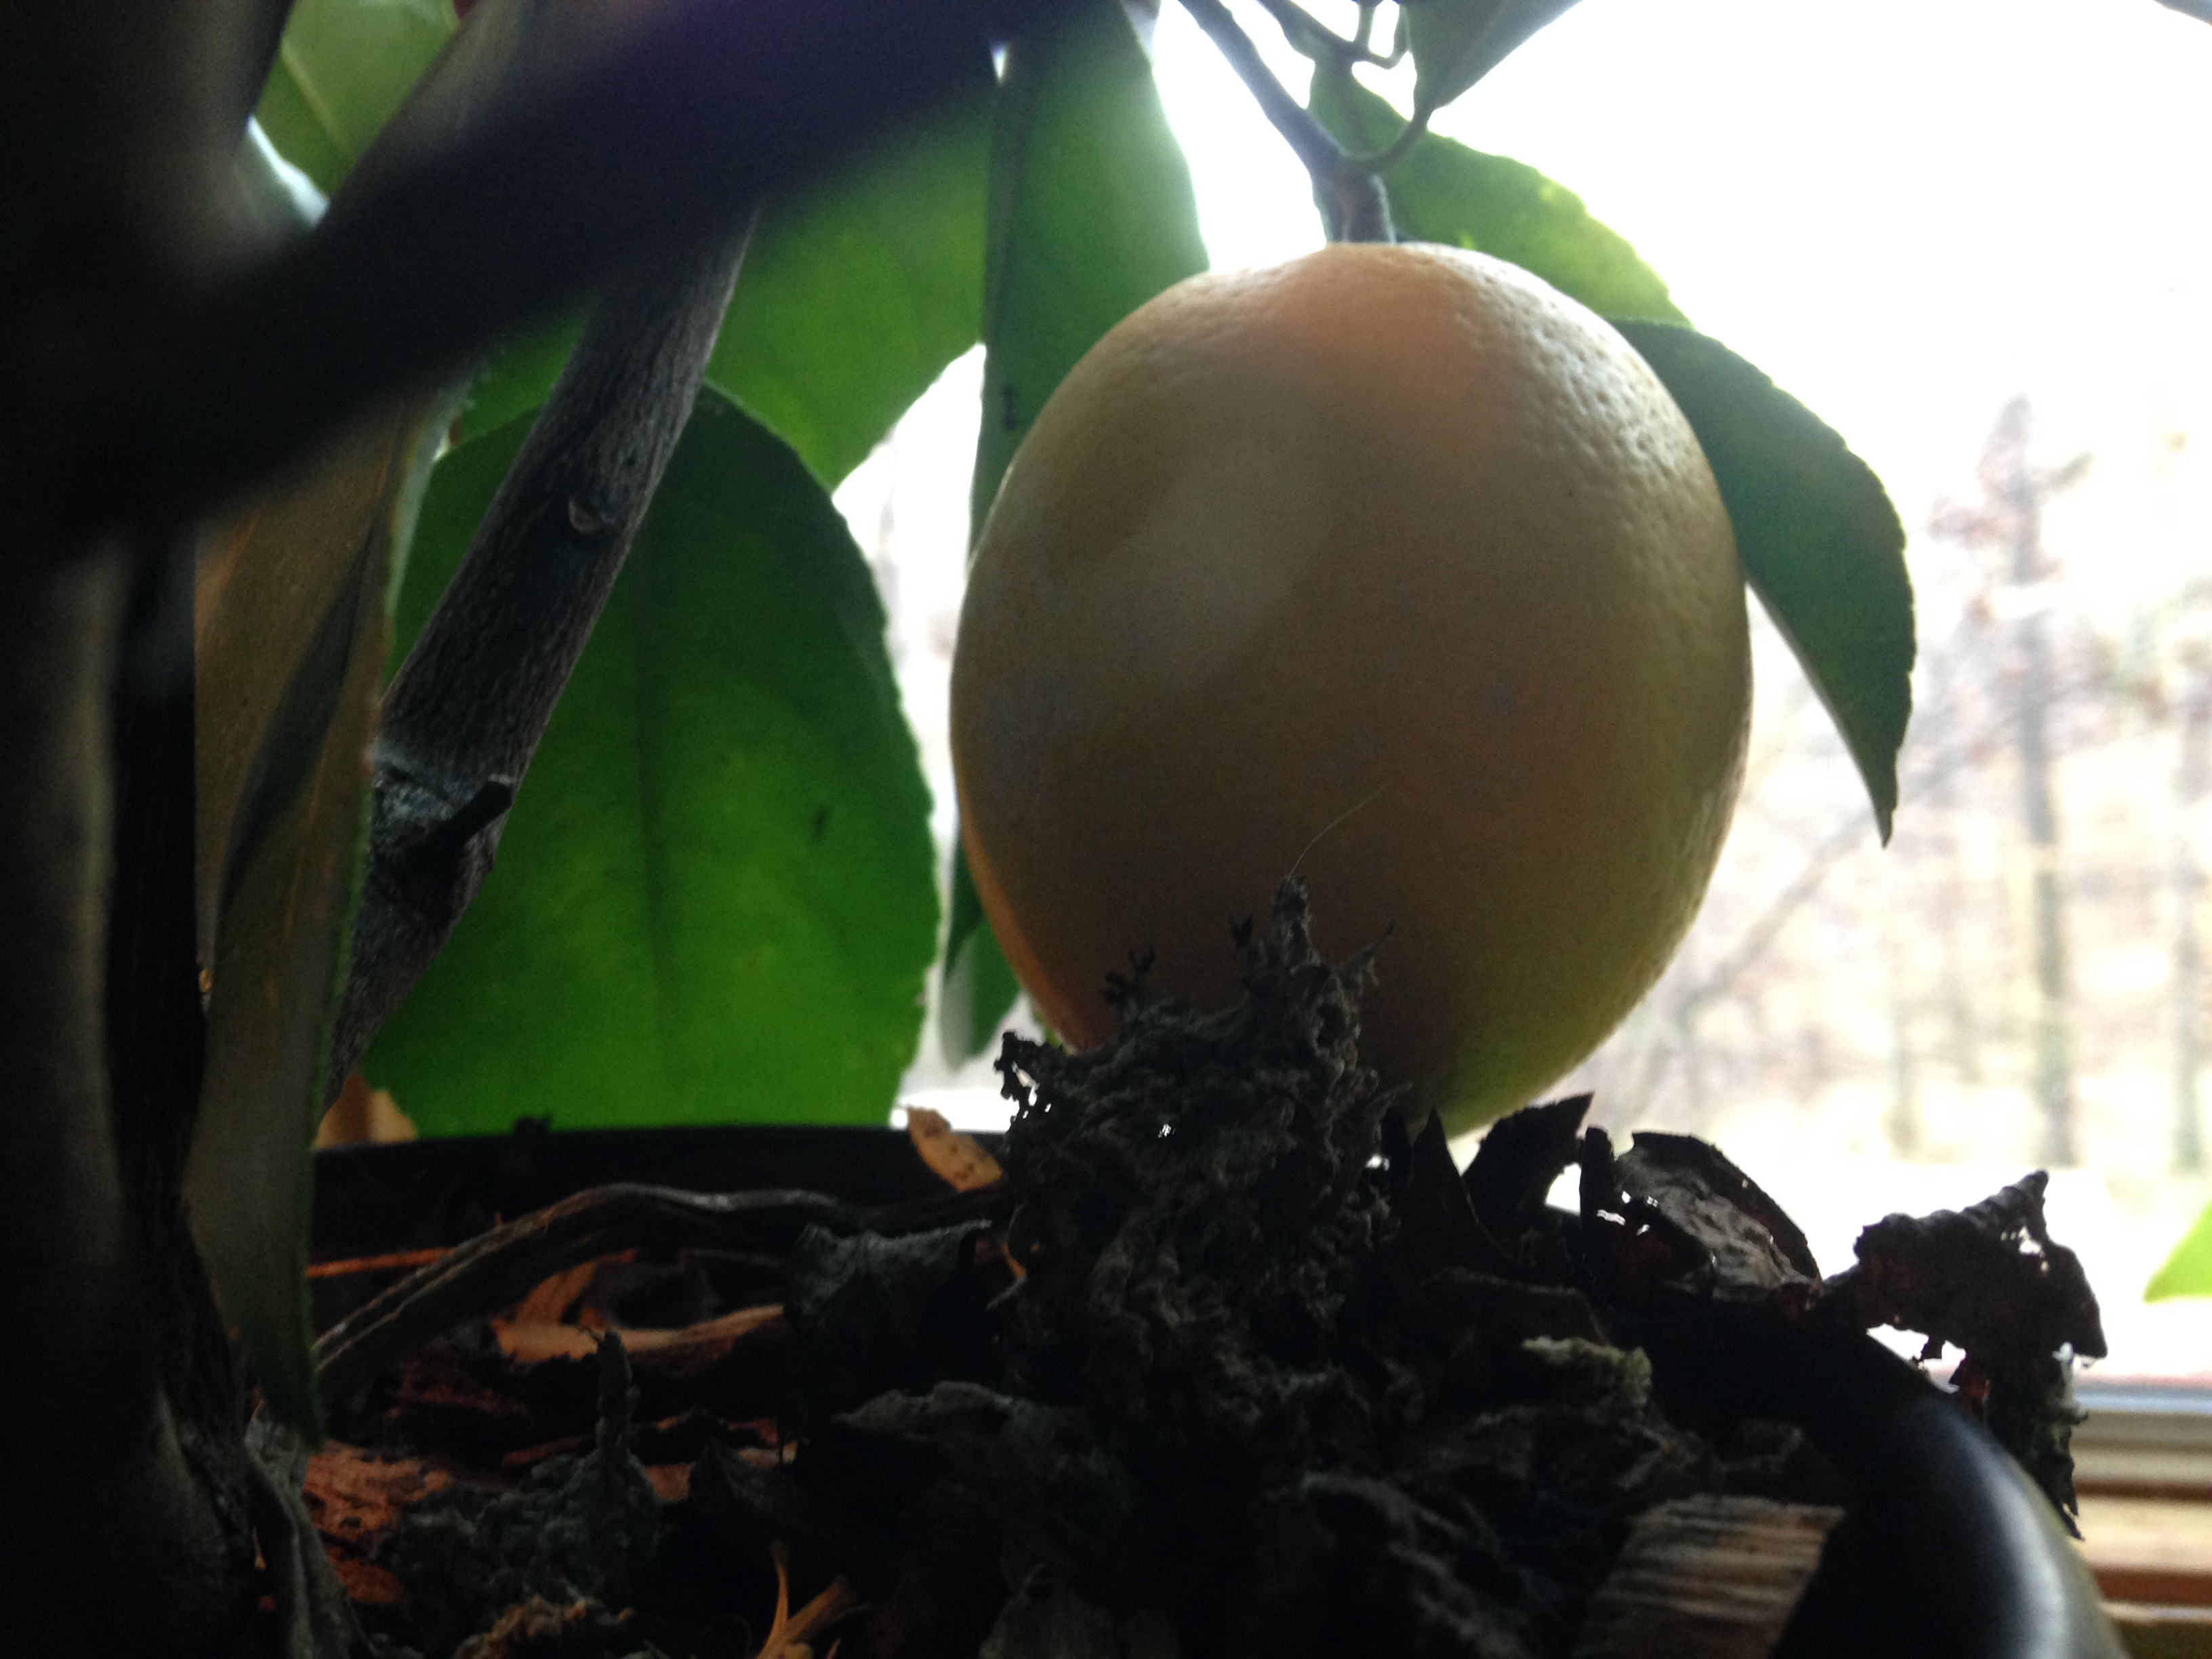 A ready to enjoy Lemon off the Meyers Lemon Tree!